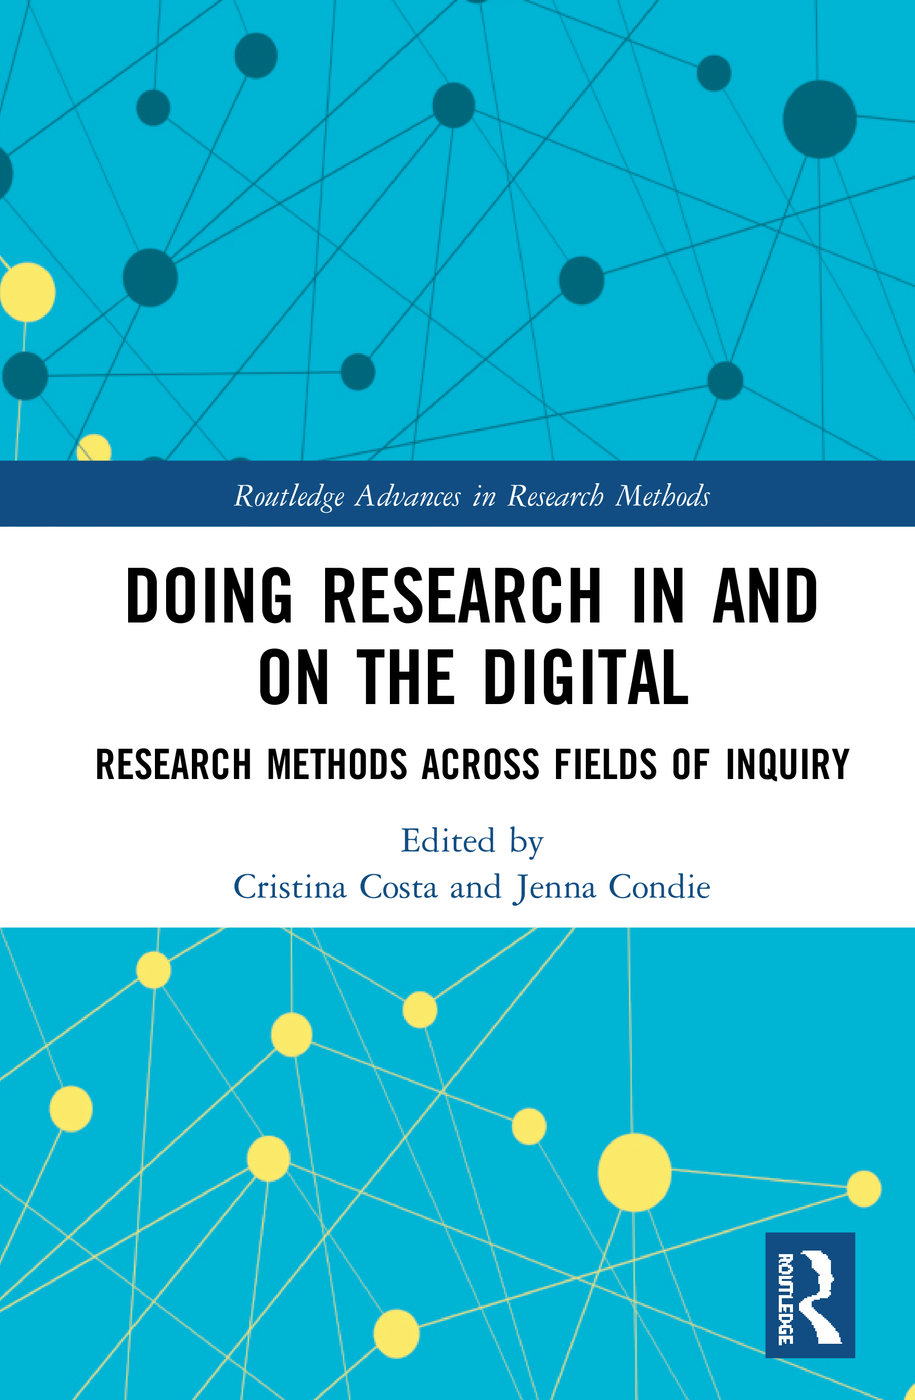 Doing Research in and on the Digital